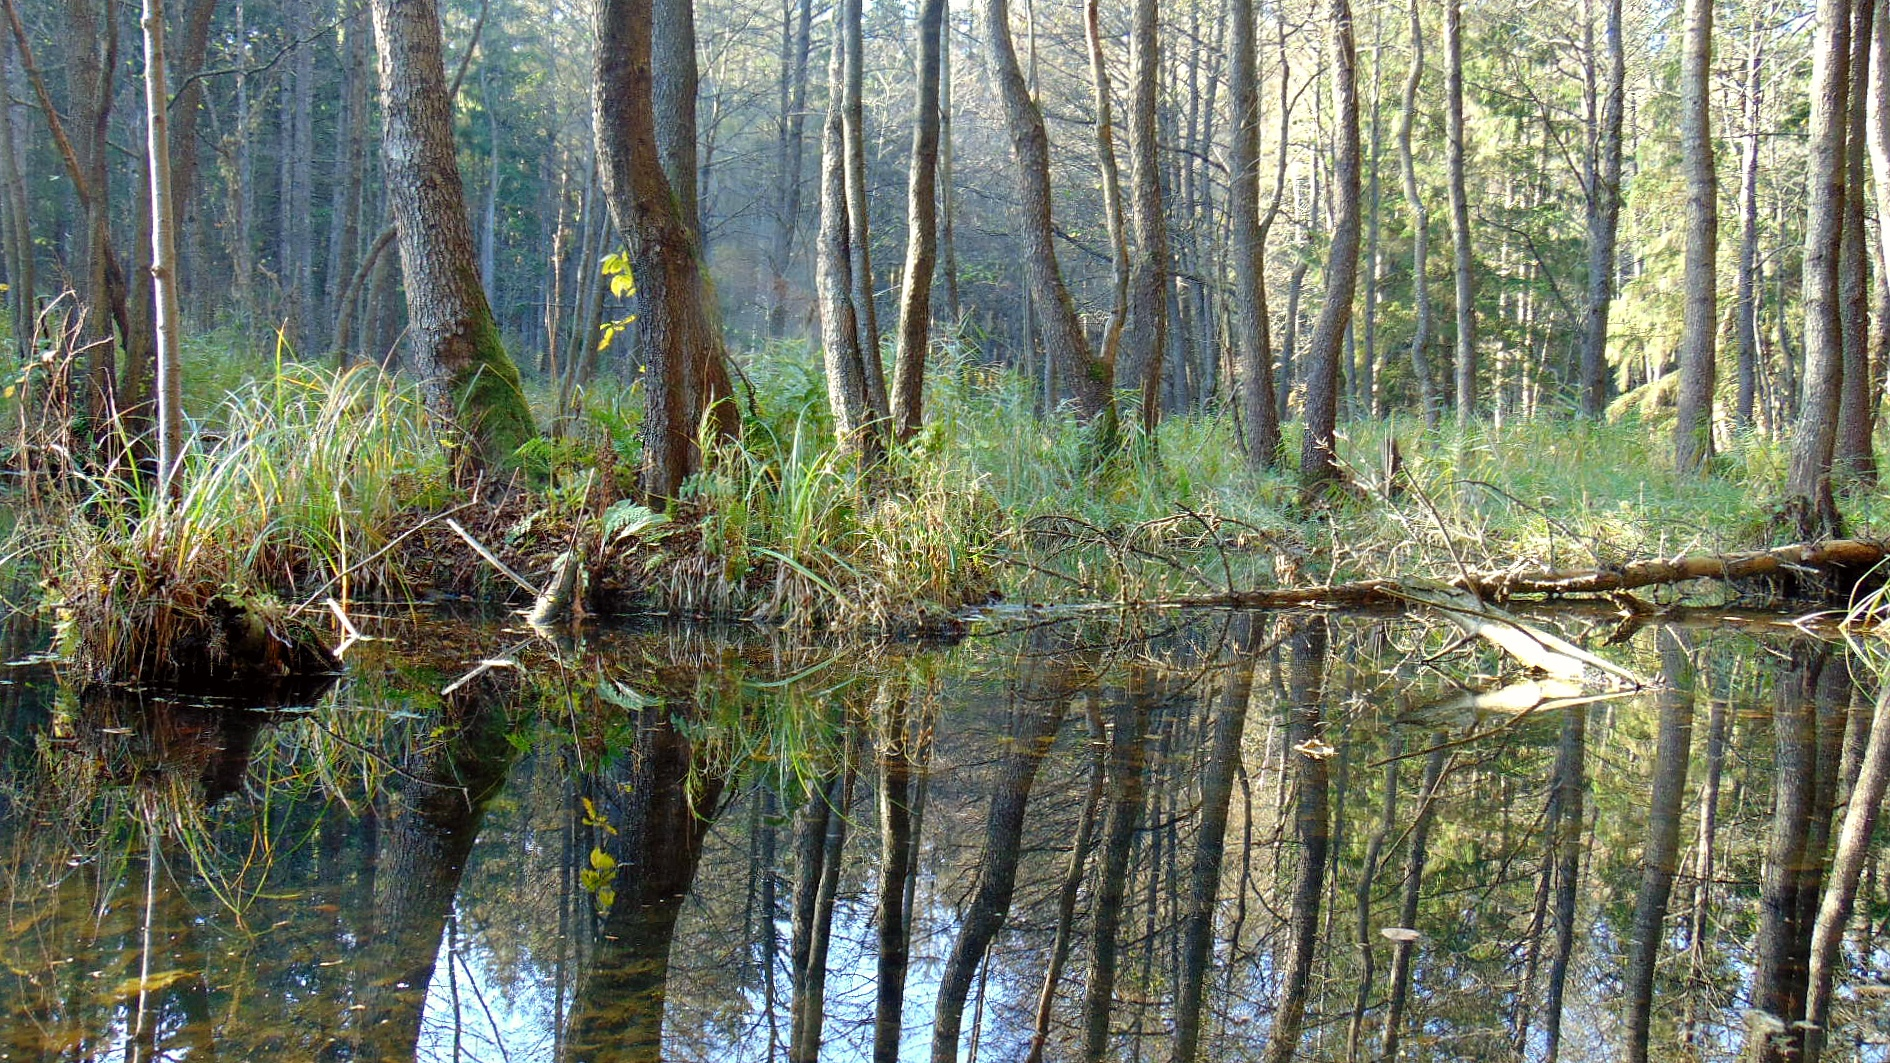 Swamp in the forest Image